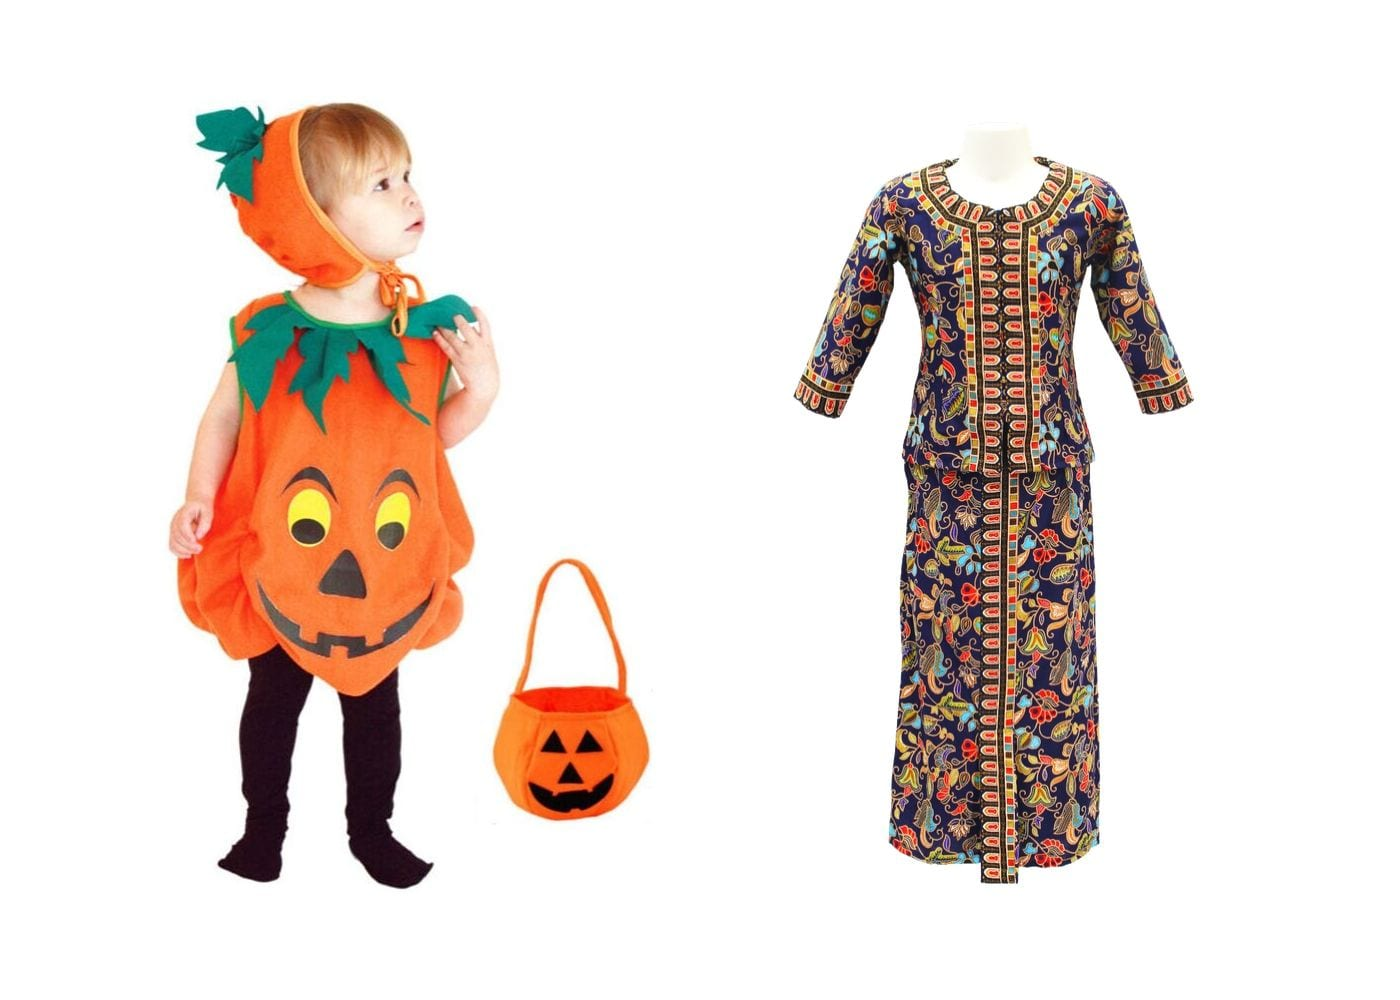 Halloween costumes in Singapore: Where to buy and rent for kids and adults